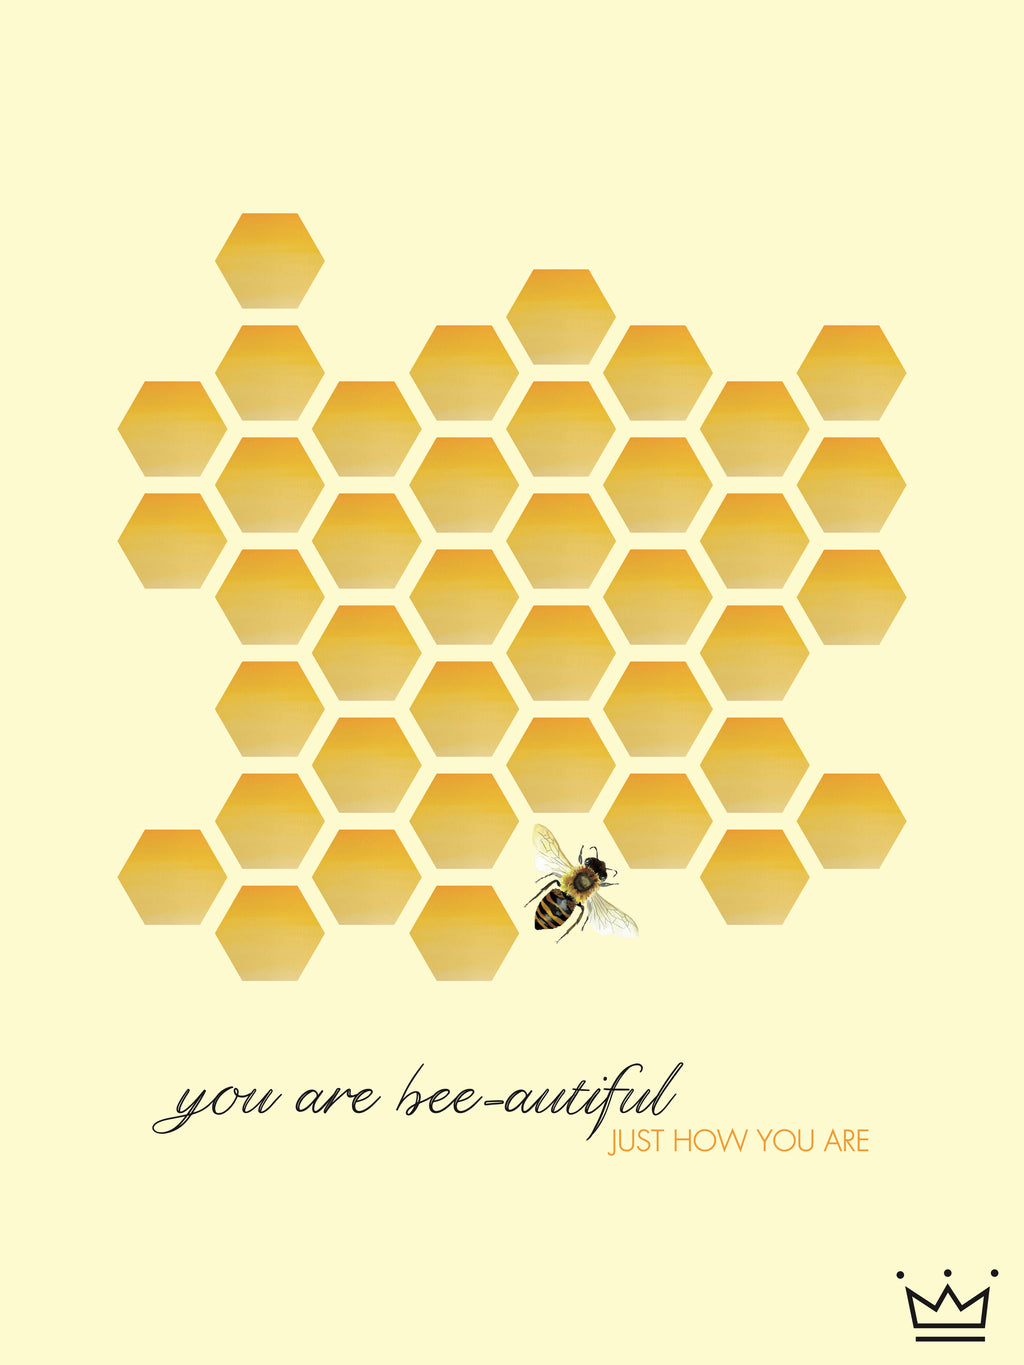 BEE-AUTIFUL